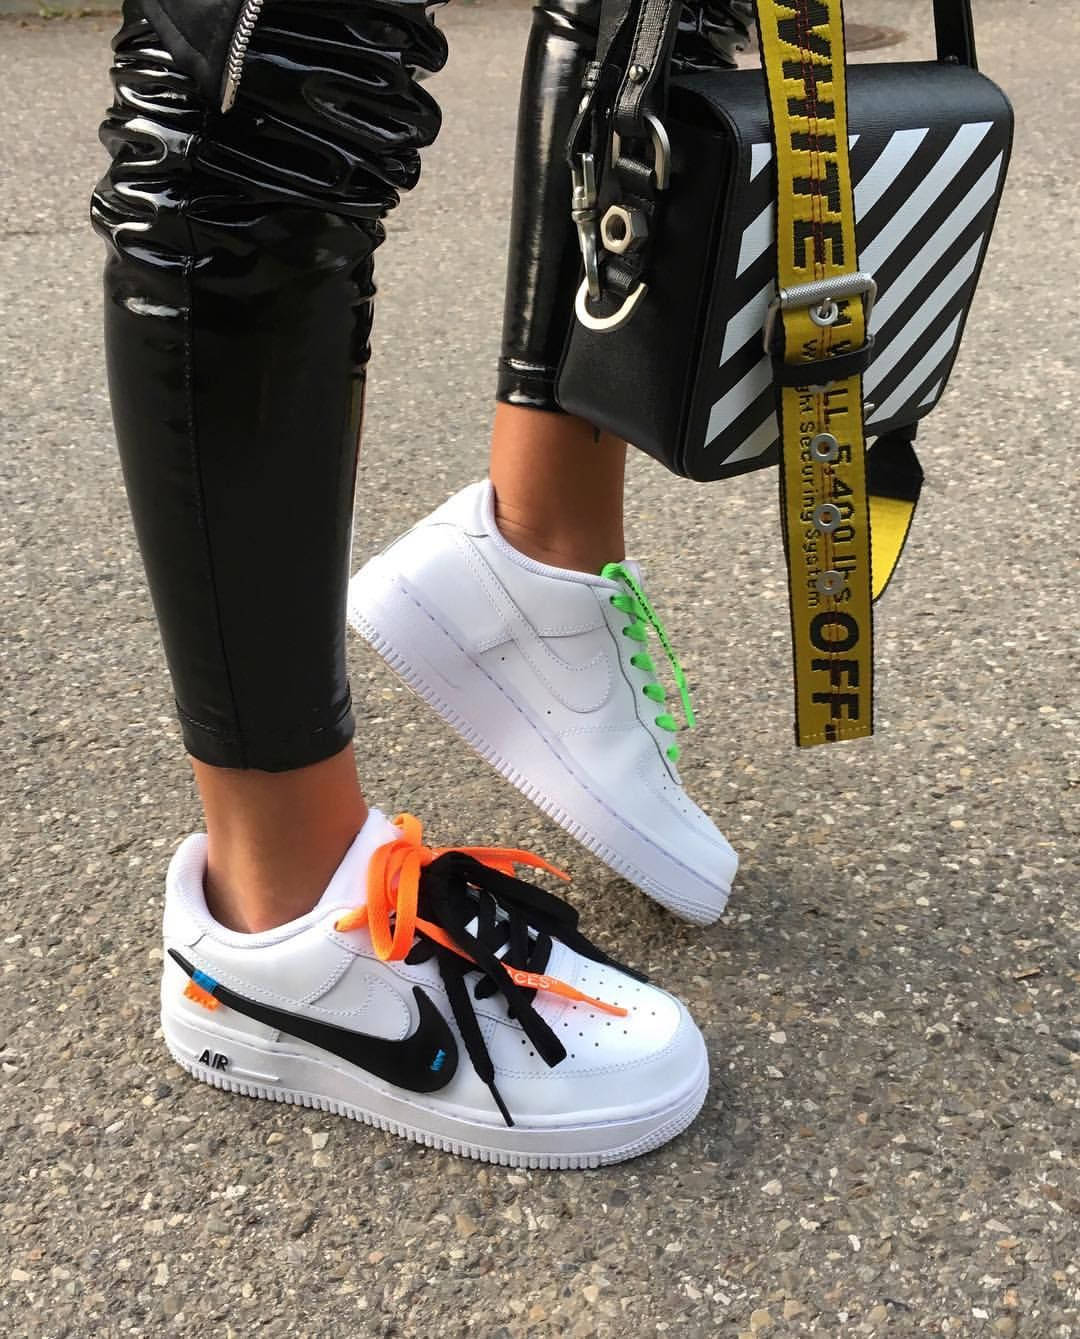 Burnell Cook on in 2020 | Black nike shoes, Sneakers, Cute shoes